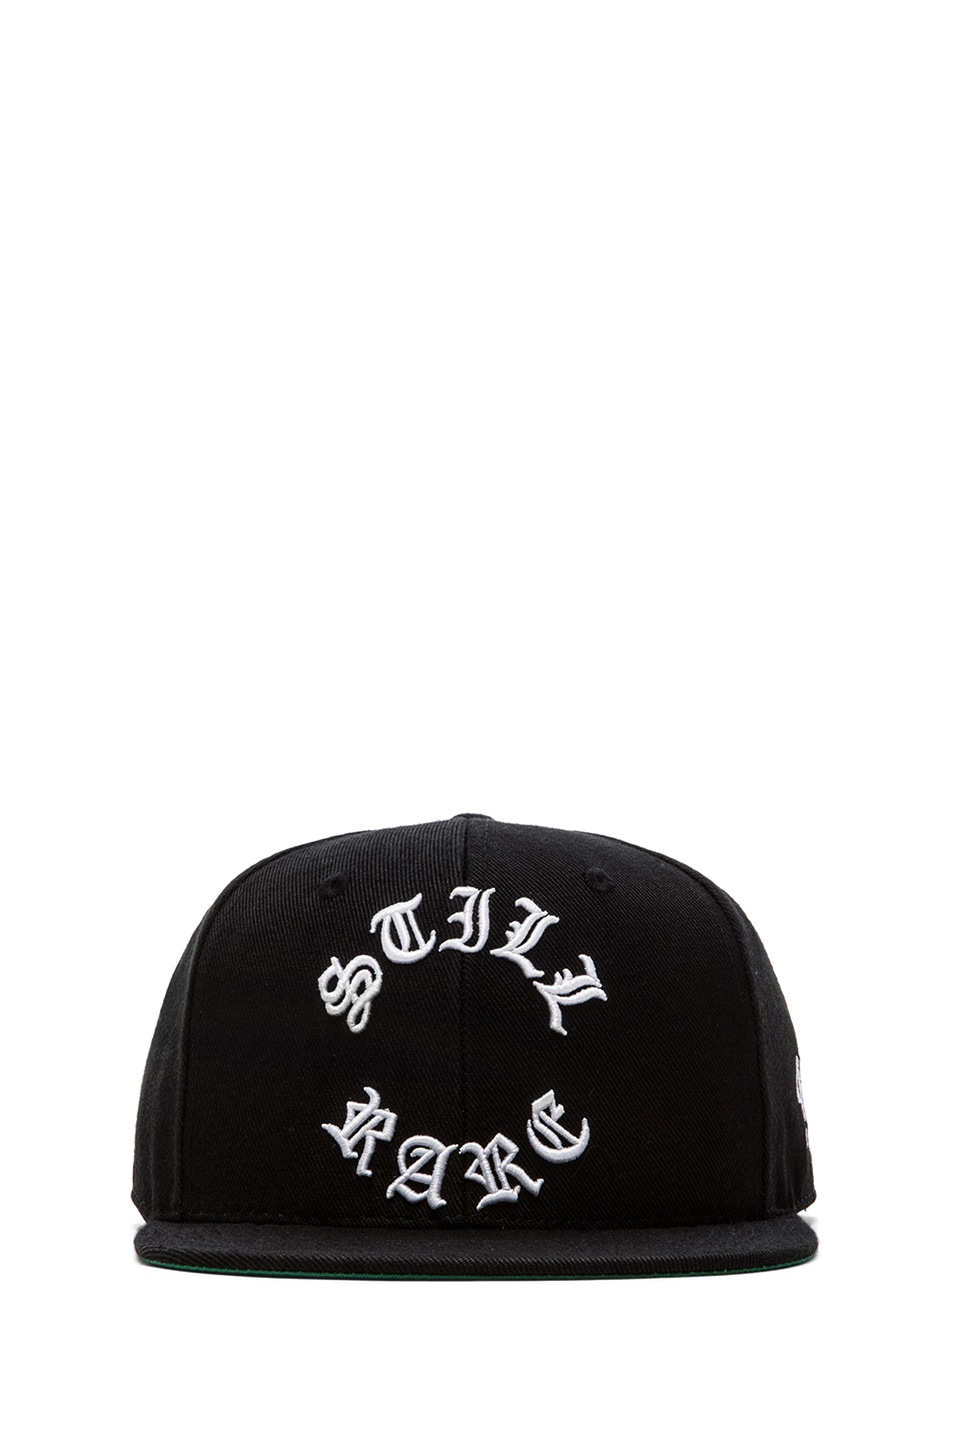 40 OZ NY Still Rare Snapback in Black